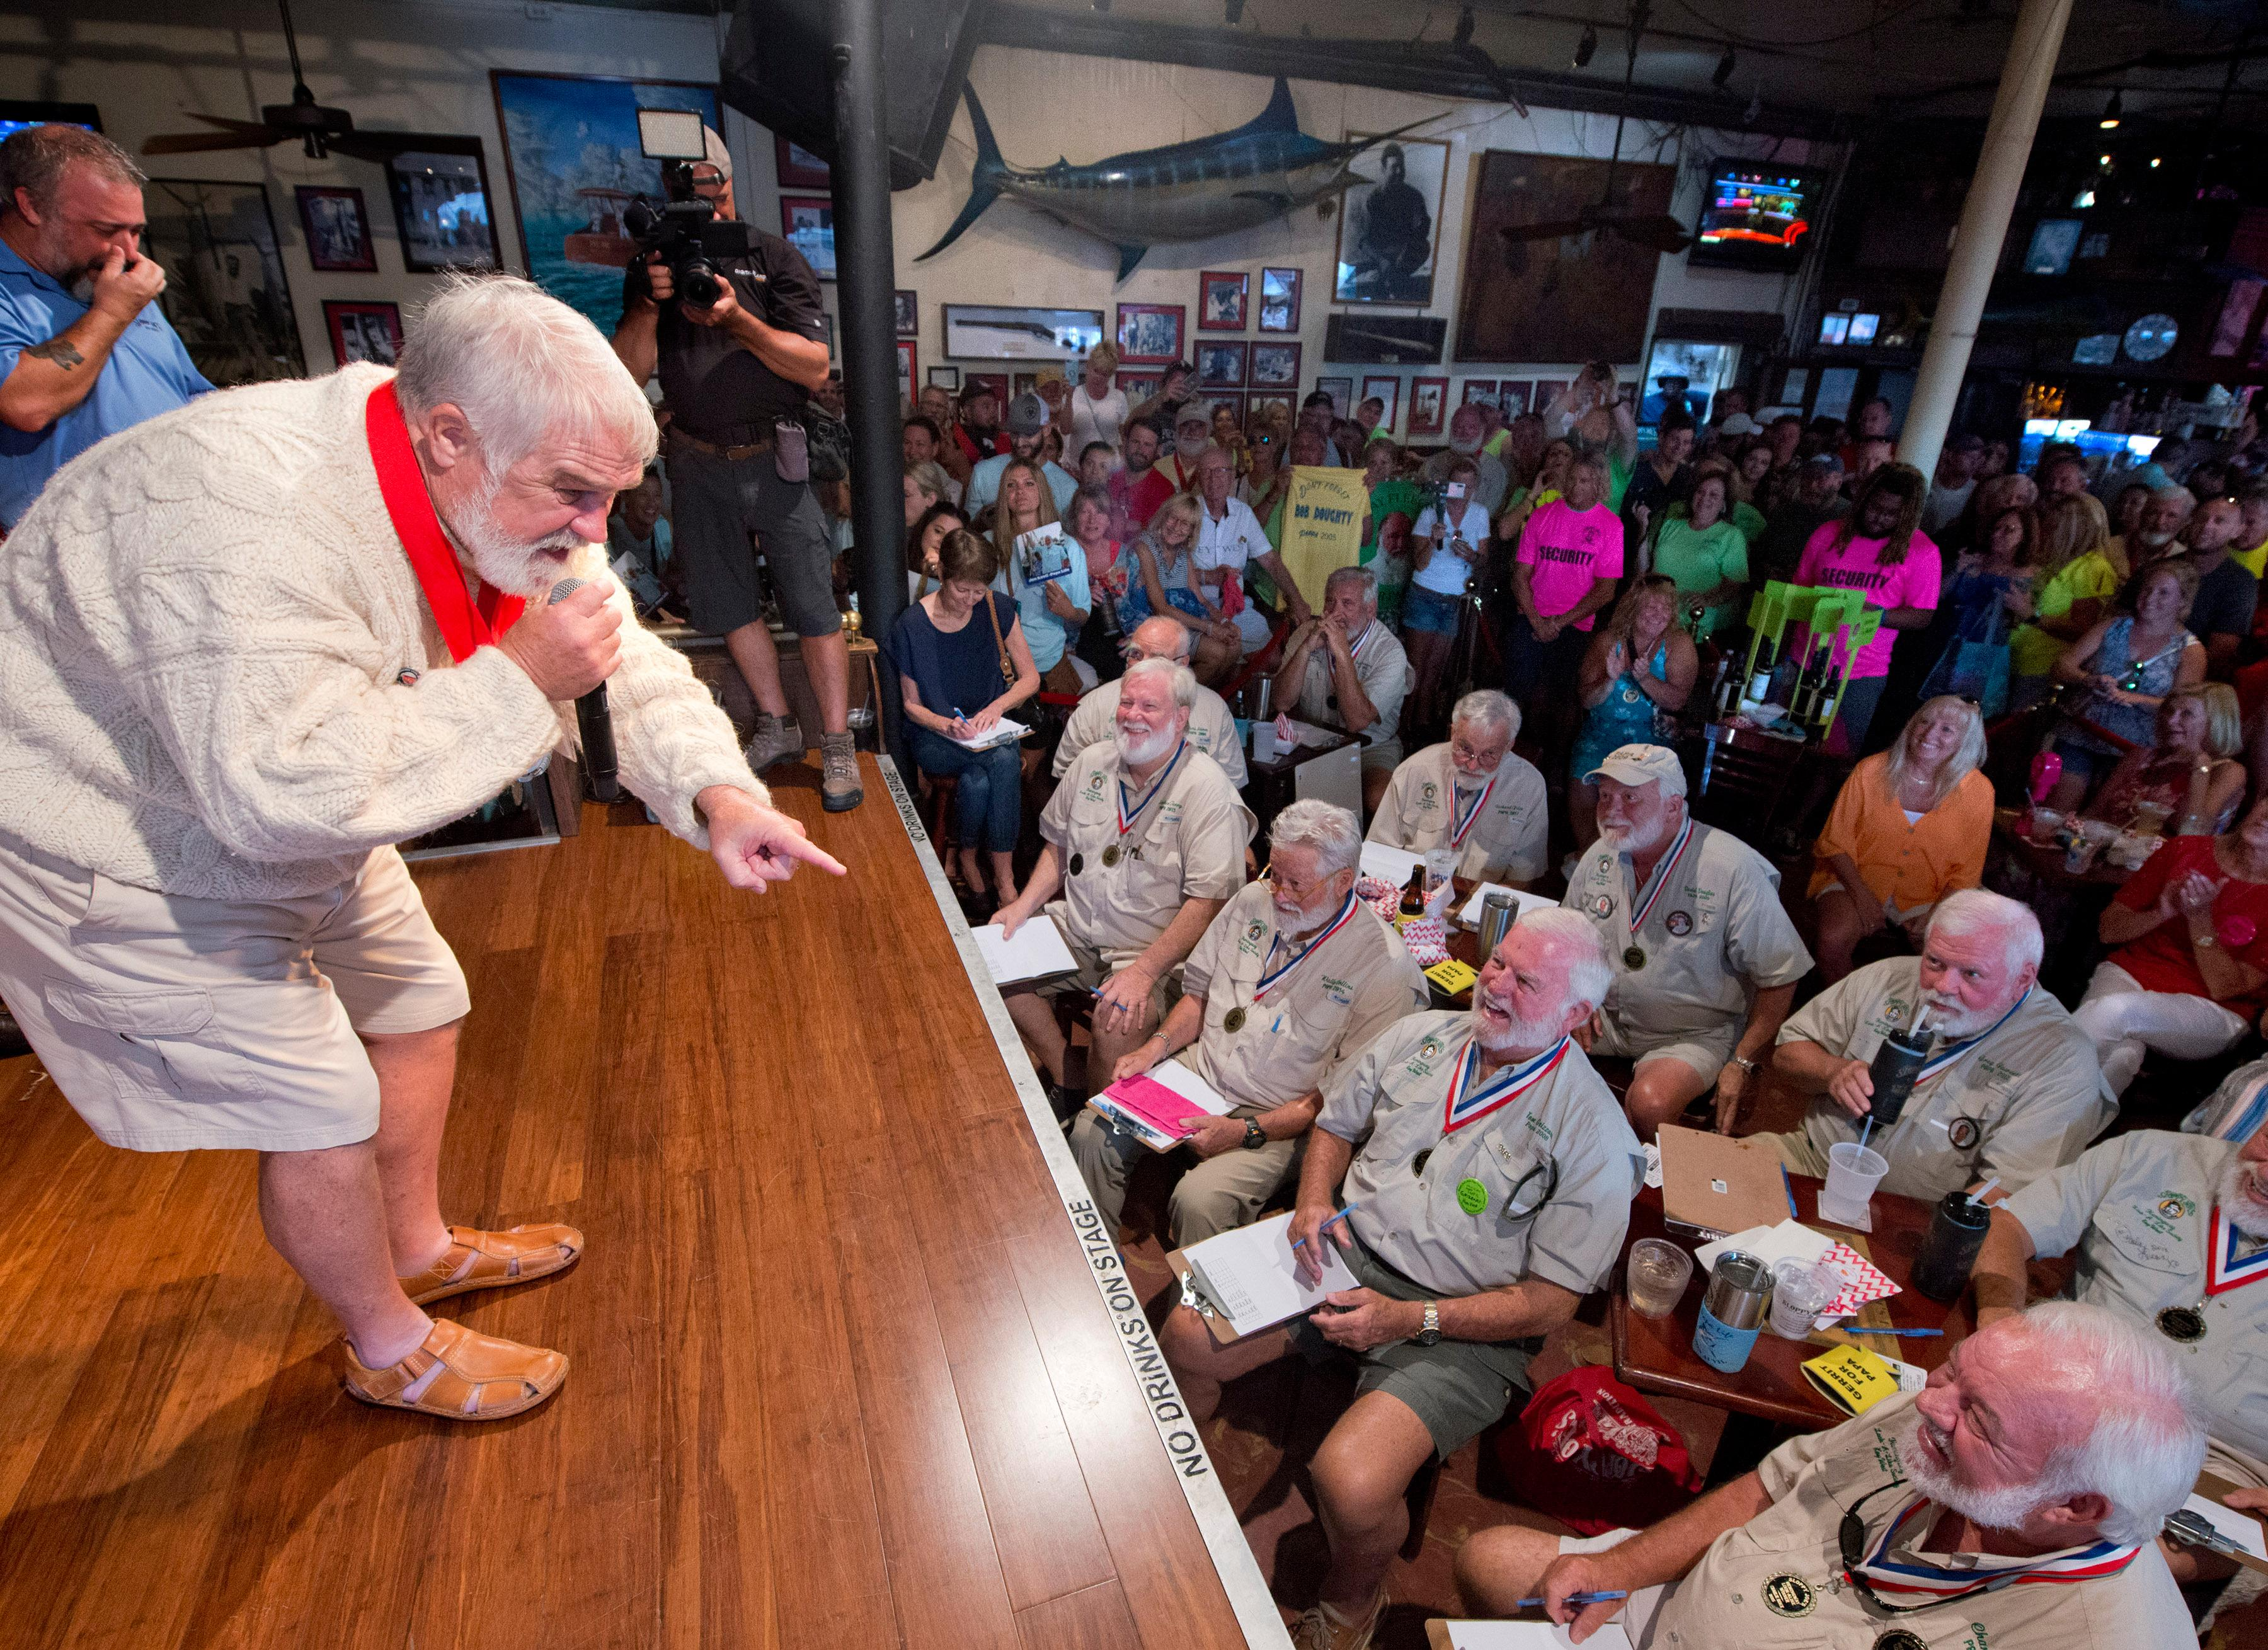 In this Saturday, July 20, 2019, photo provided by the Florida Keys News Bureau, Joe Maxey, left, implores past winners of the Hemingway Look-Alike Contest to judge him the winner of the 2019 competition at Sloppy Joe's Bar in Key West, Fla. Maxey went on to beat 141 other contestants to win. The competition highlighted activities during the yearly Hemingway Days festival that honors author Ernest Hemingway, who lived in Key West during the 1930s. (Andy Newman/Florida Keys News Bureau via AP)